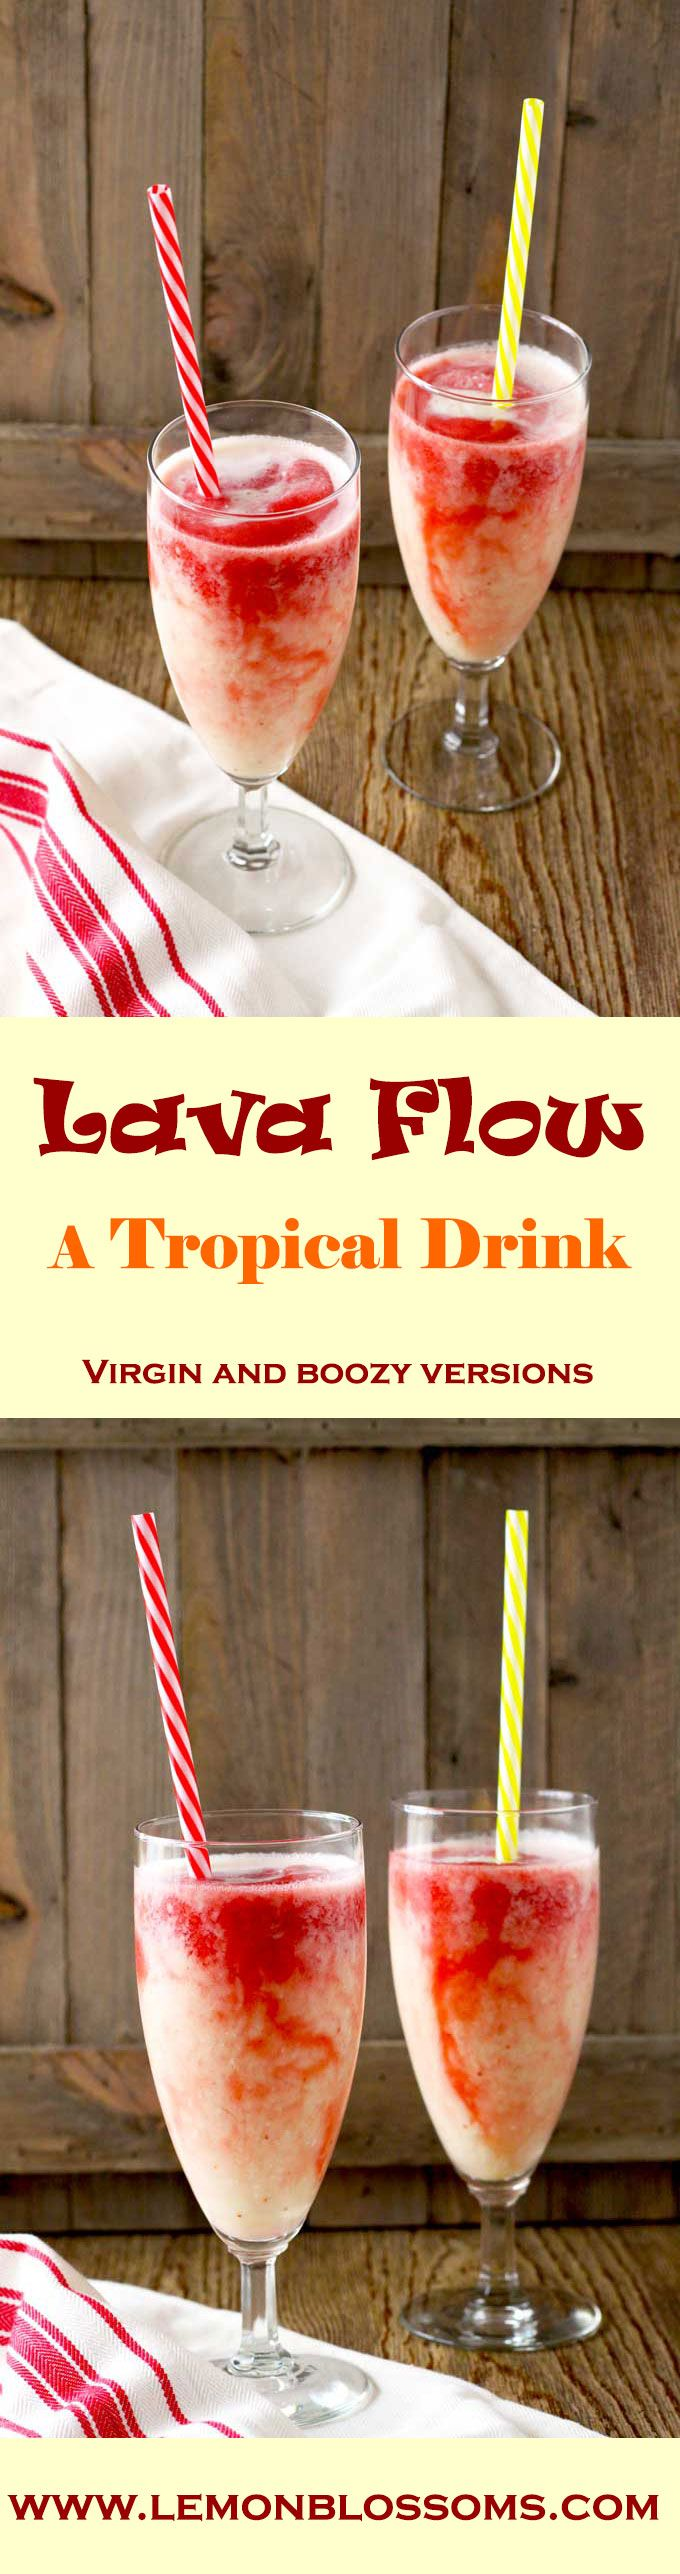 Lava Flow ~ a tropical drink that mixes pineapple, coconut and strawberries to create a sweet, delicious and refreshing drink. One sip will transport you to a beautiful tropical island. It's like paradise in a glass!!!  Virgin and non-virgen recipes provided! via @https://www.pinterest.com/lmnblossoms/